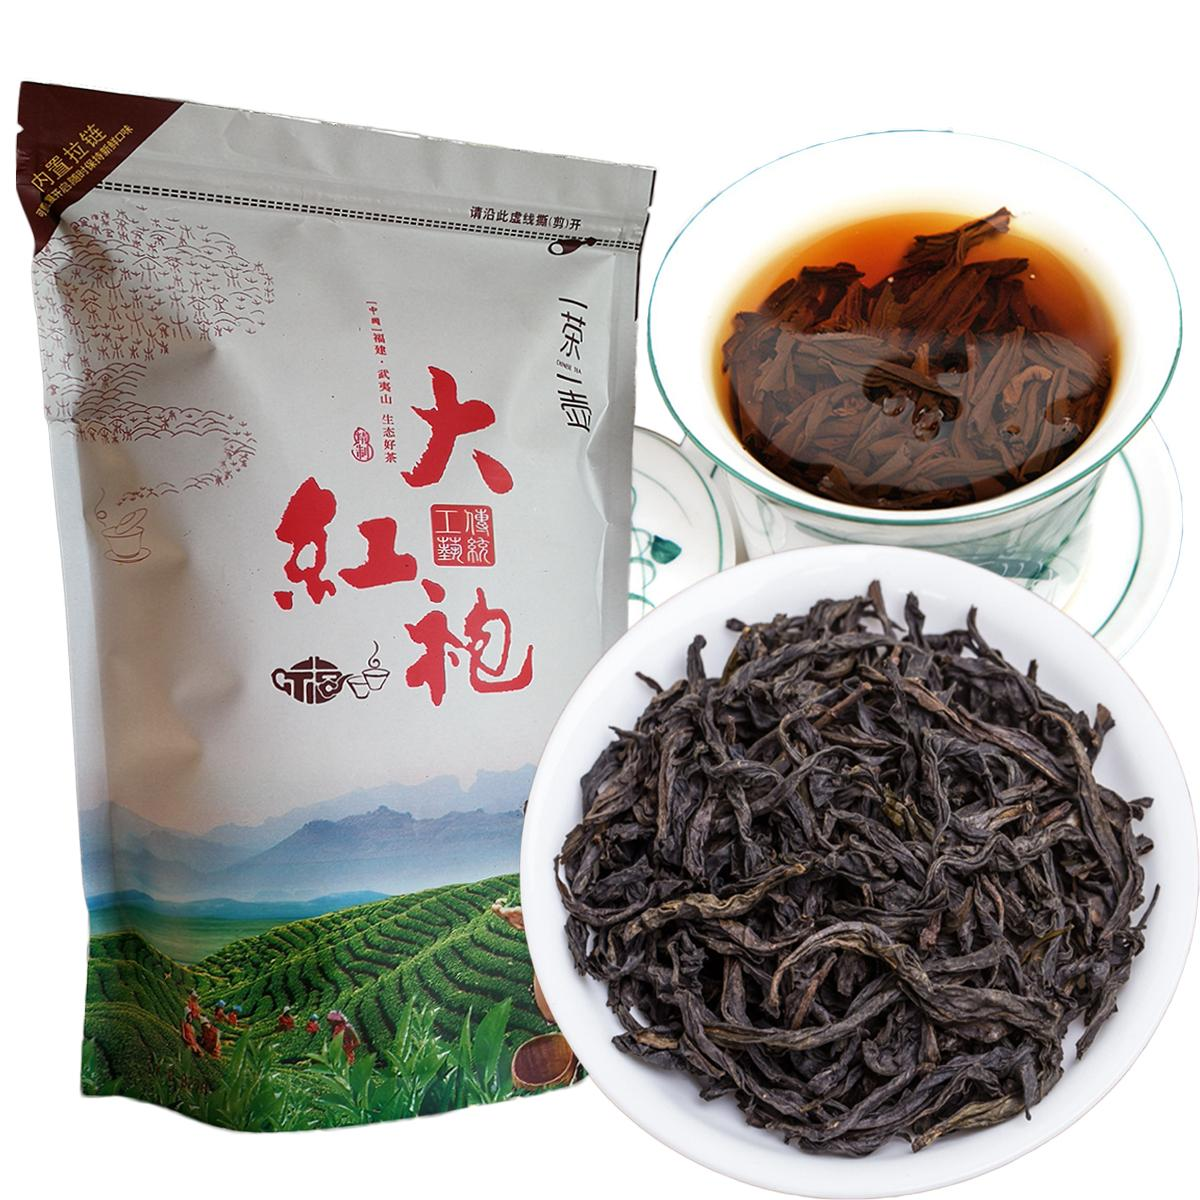 250g New 2,019 preto orgânico Chinese Tea Wuyi Dahongpao Big Red Robe Oolong chá cozido chá verde Food